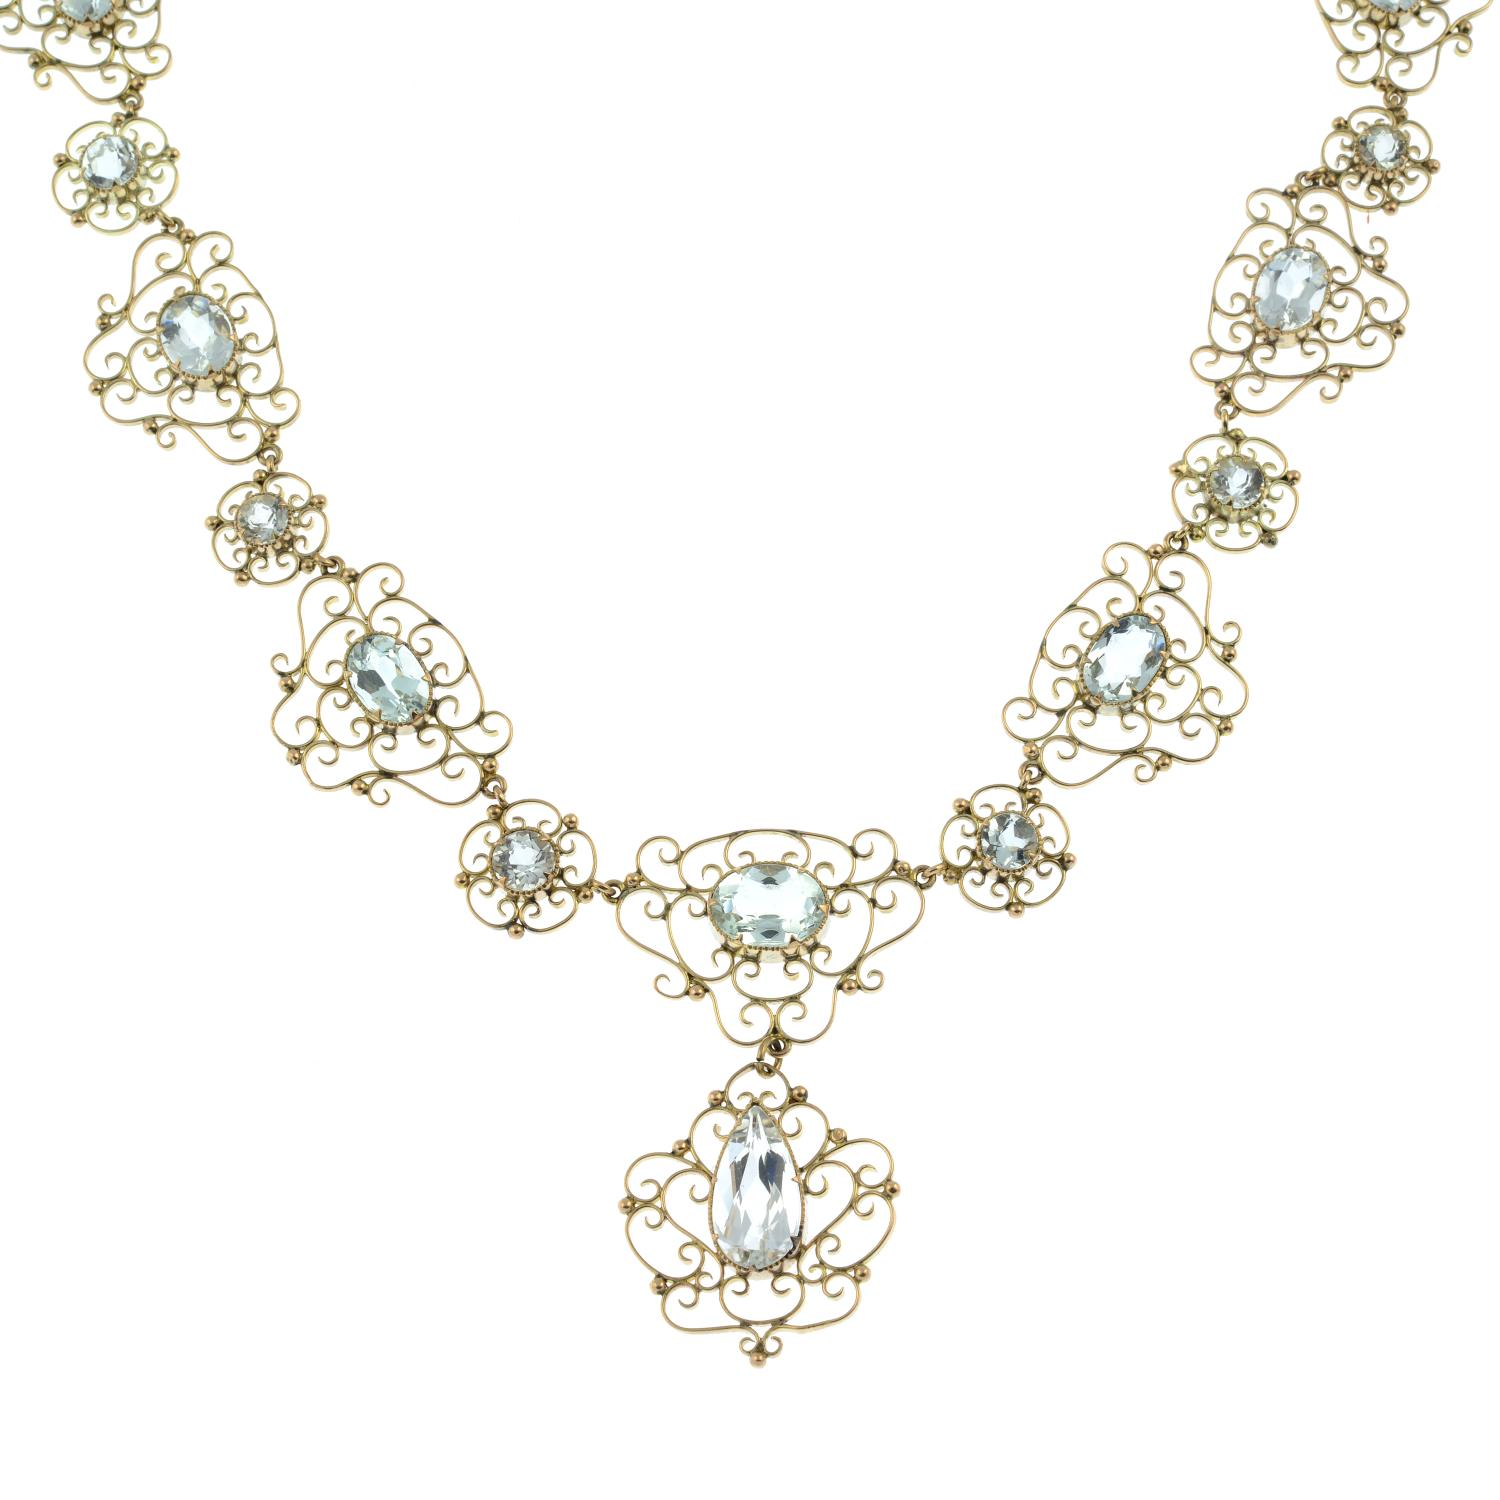 An early 20th century Arts & Crafts gold aquamarine necklace.Length 43.5cms. - Image 2 of 6